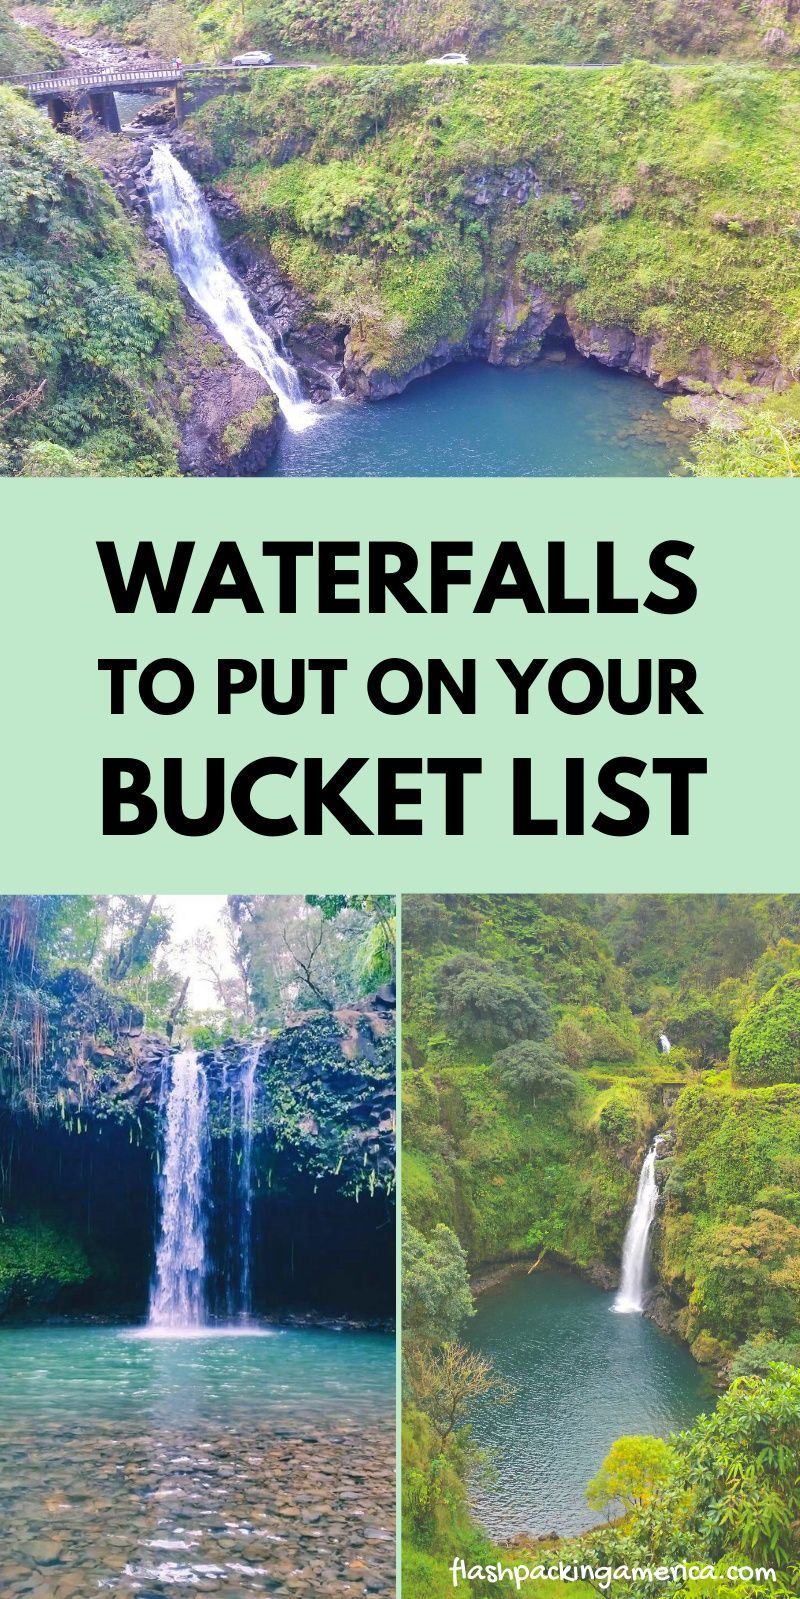 Some amazing waterfalls to put on your bucket list